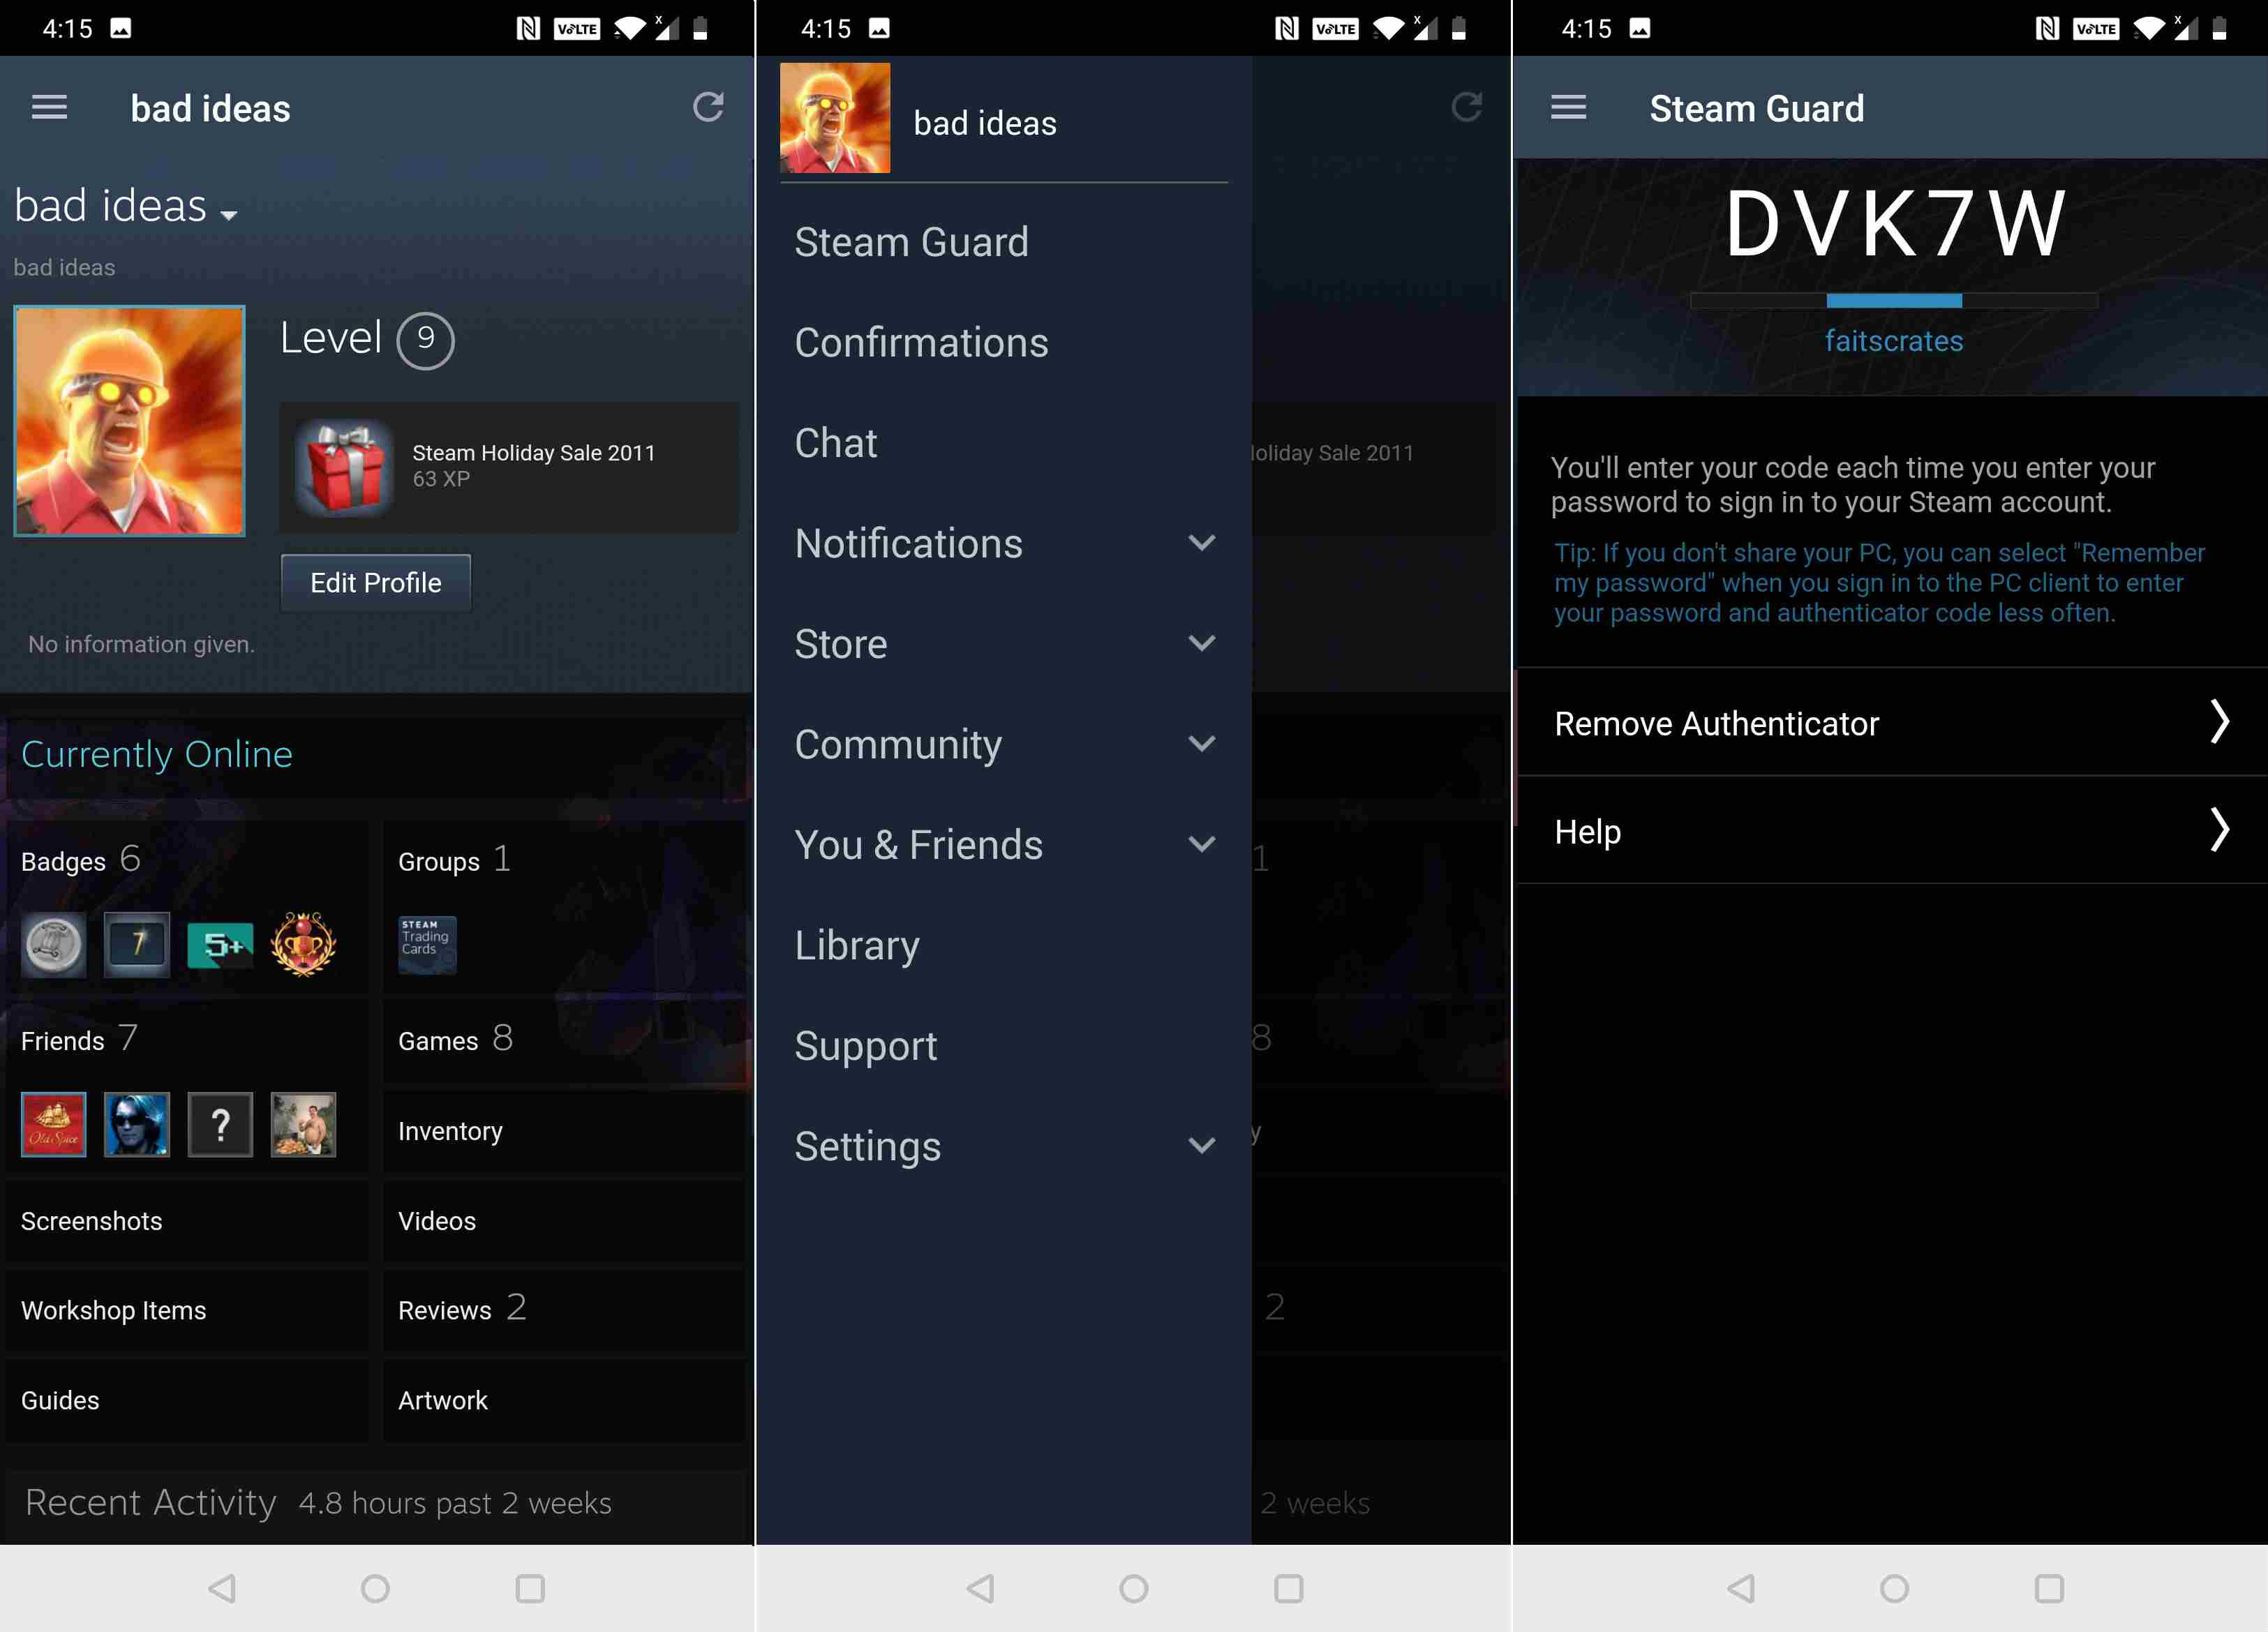 How to Use Steam Guard Mobile Authenticator